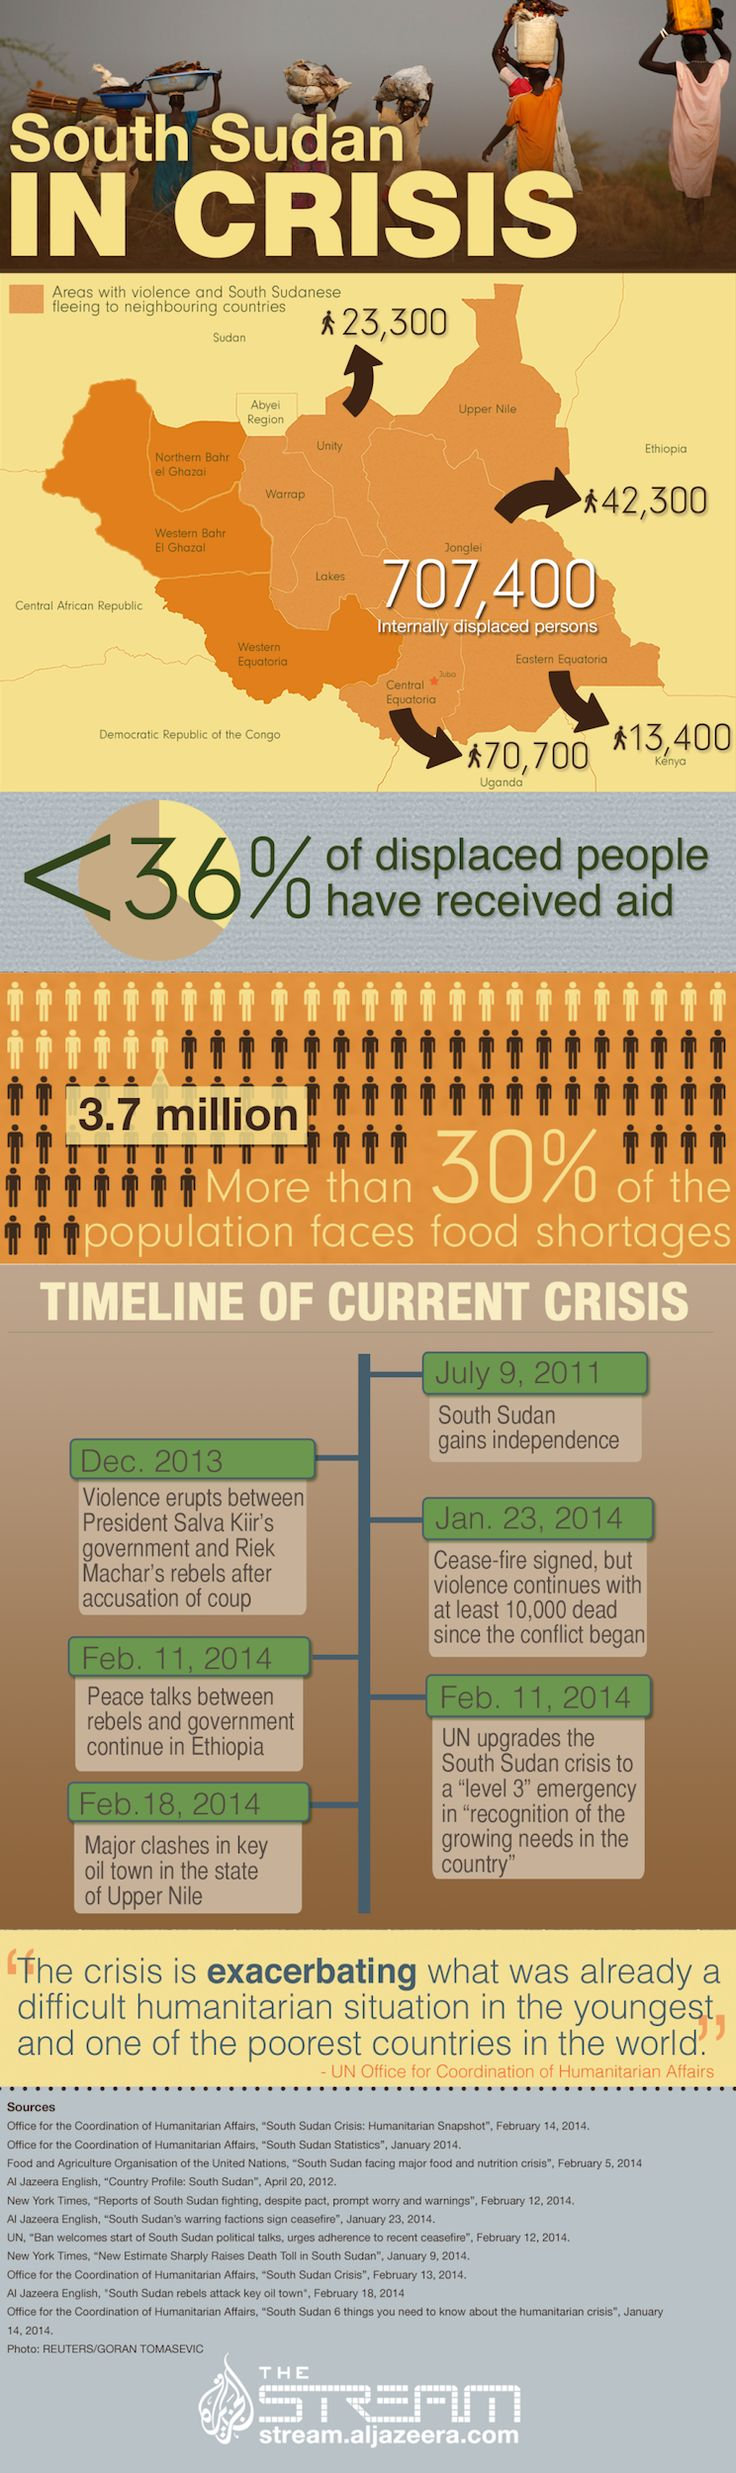 Infographic South Sudan in crisis 36 best